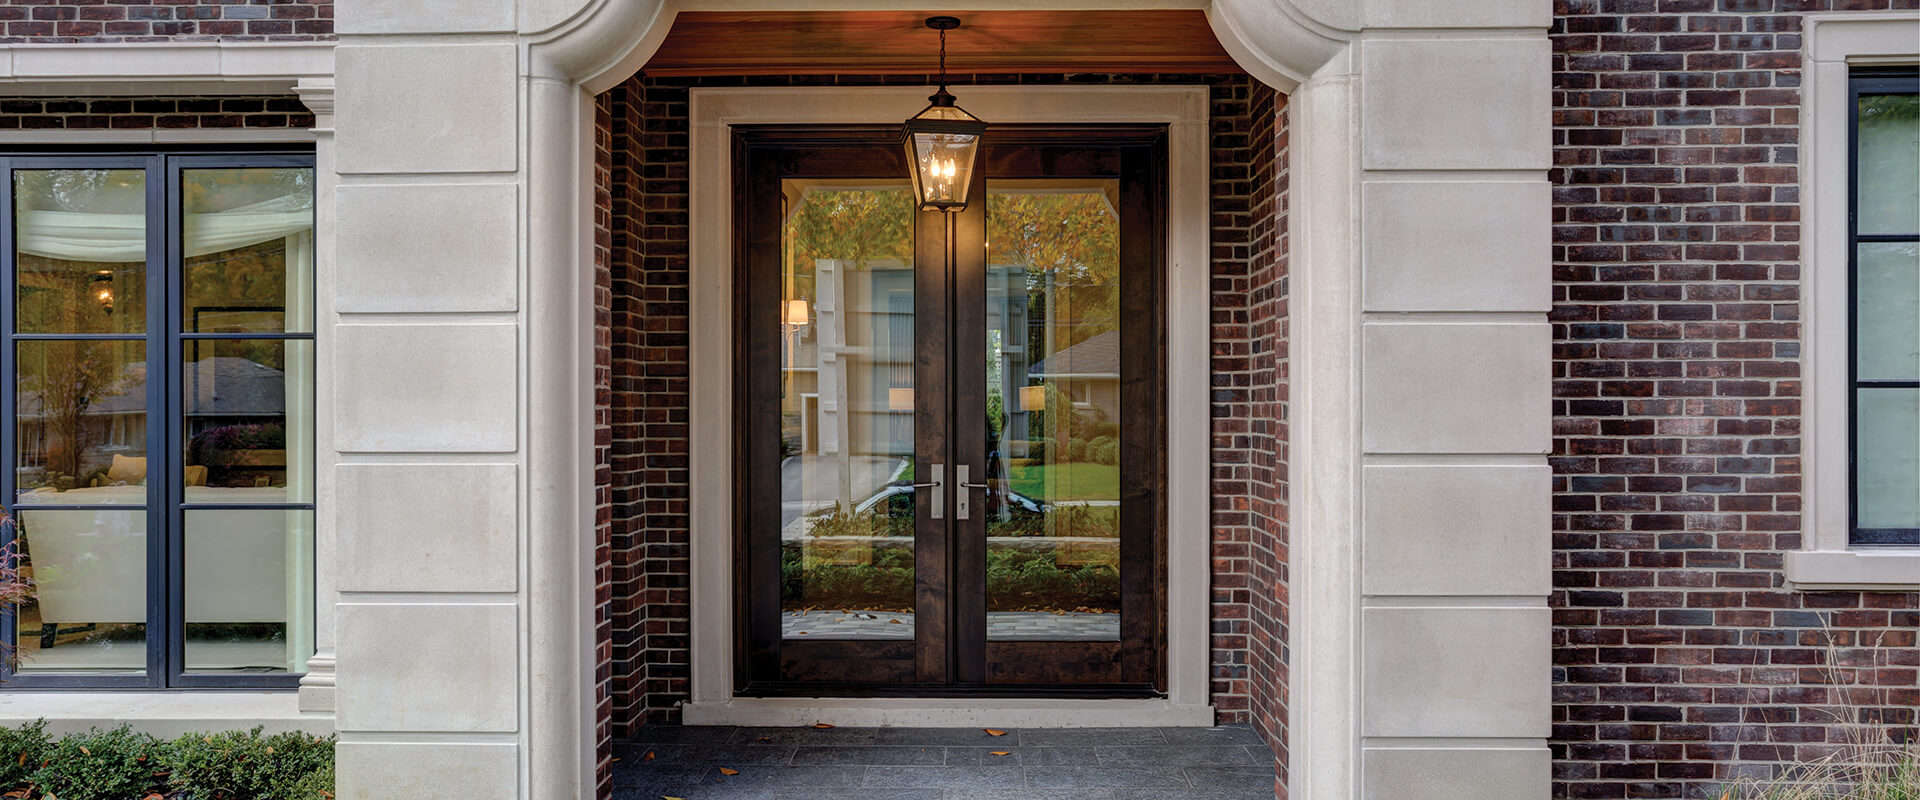 Entrance Doors Heritage Series Entrance Doors Kolbe Windows Doors